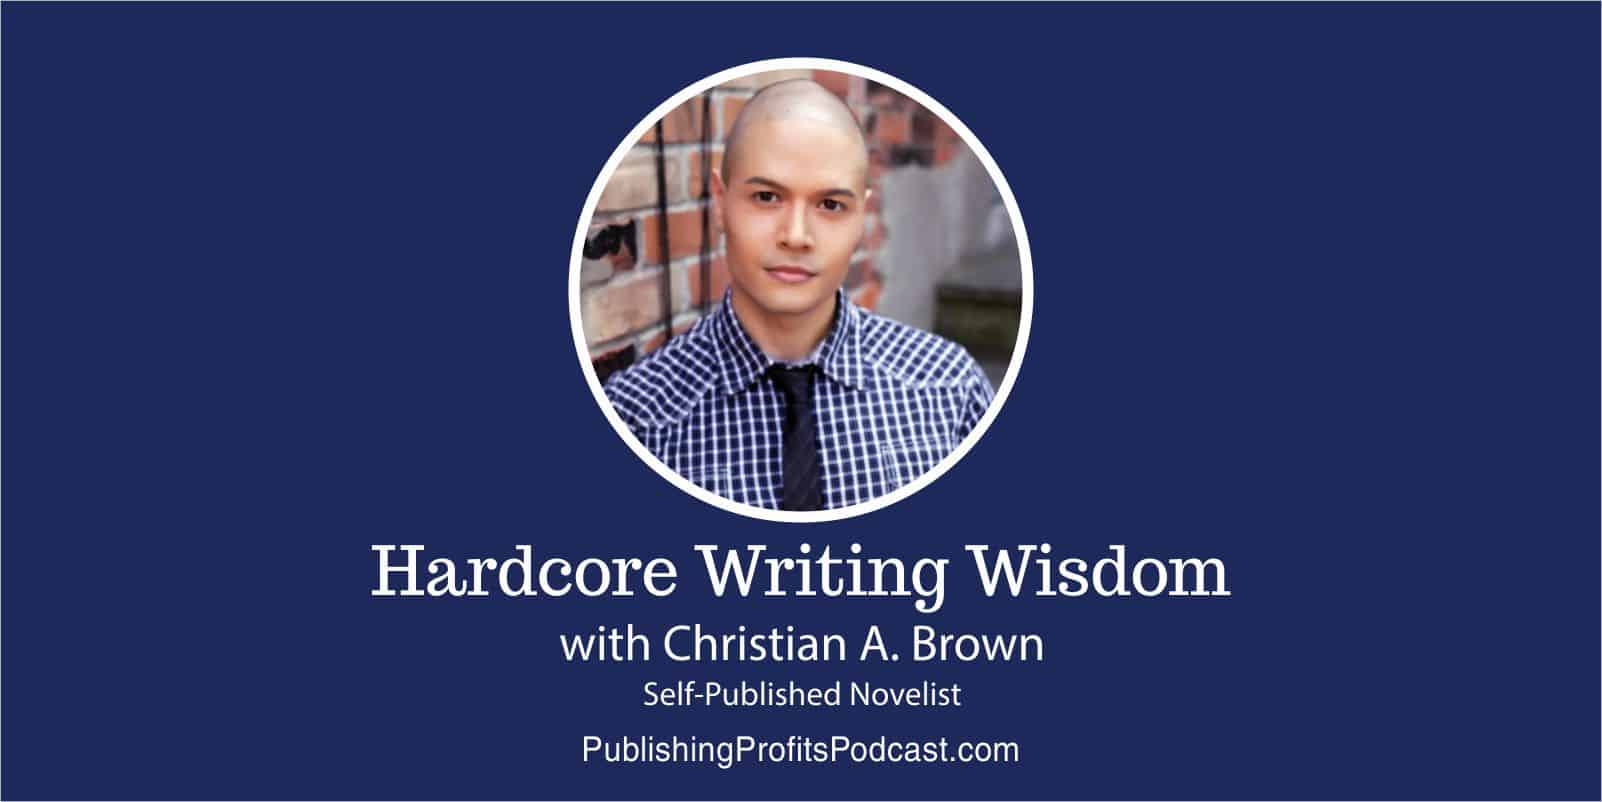 Hardcore Writing Wisdom Christian A. Brown header